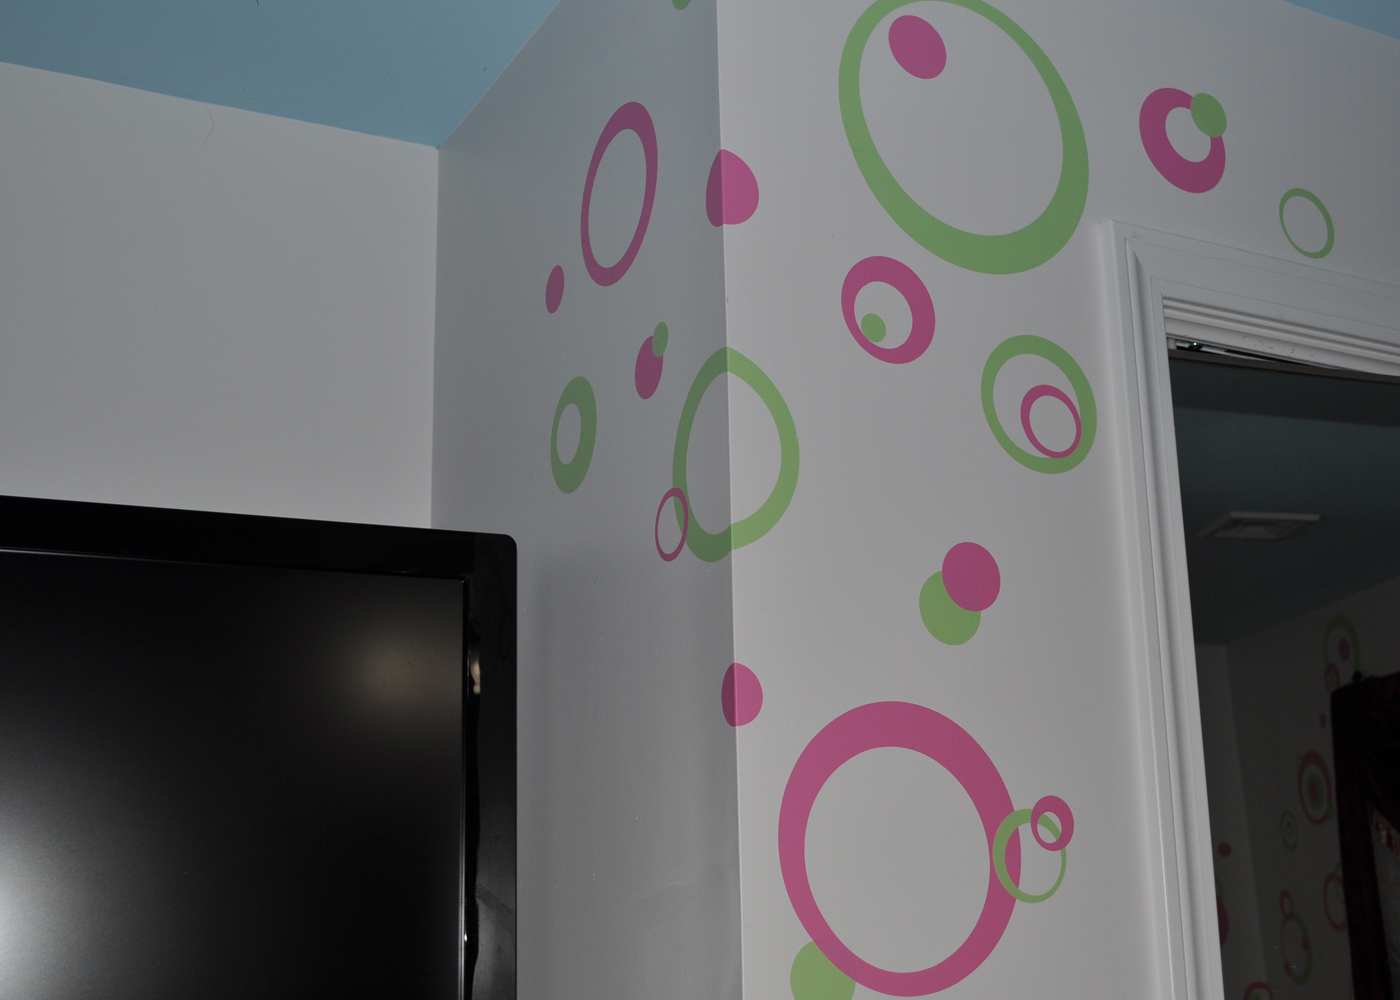 wall-decal-sticker-rings-circles-dots-in-girls-room-pink-green.jpg